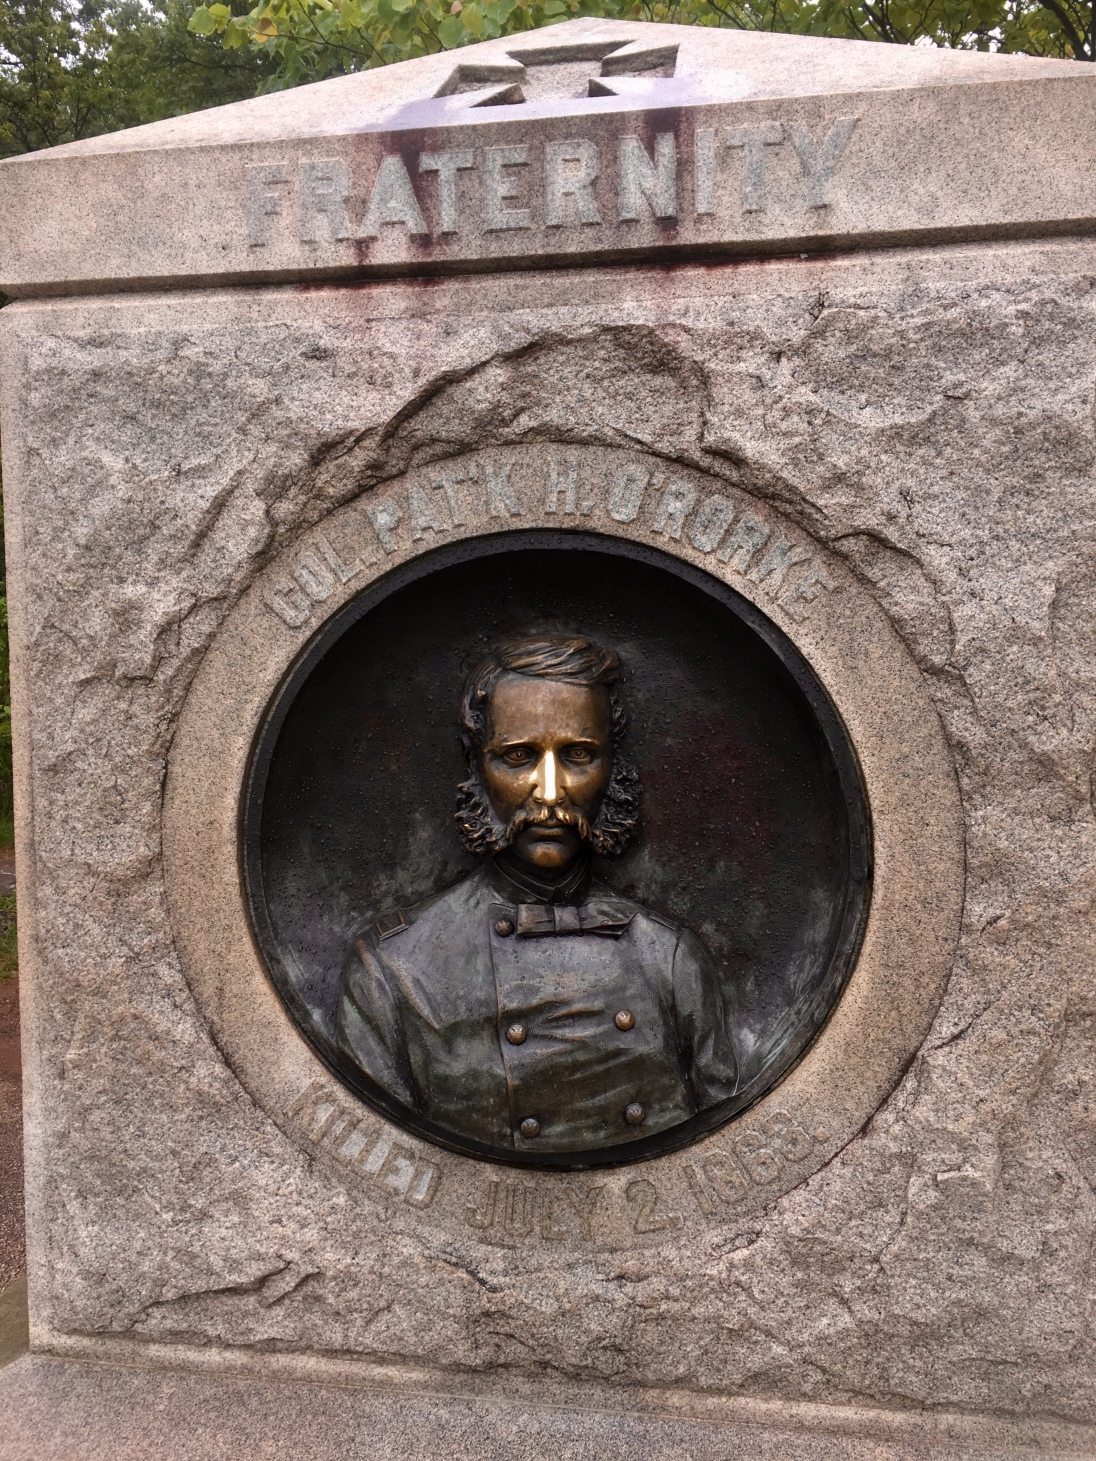 Colonel Patrick O'Rorke: I feel the polish on his nose is somewhat undignified (at Little Round Top)